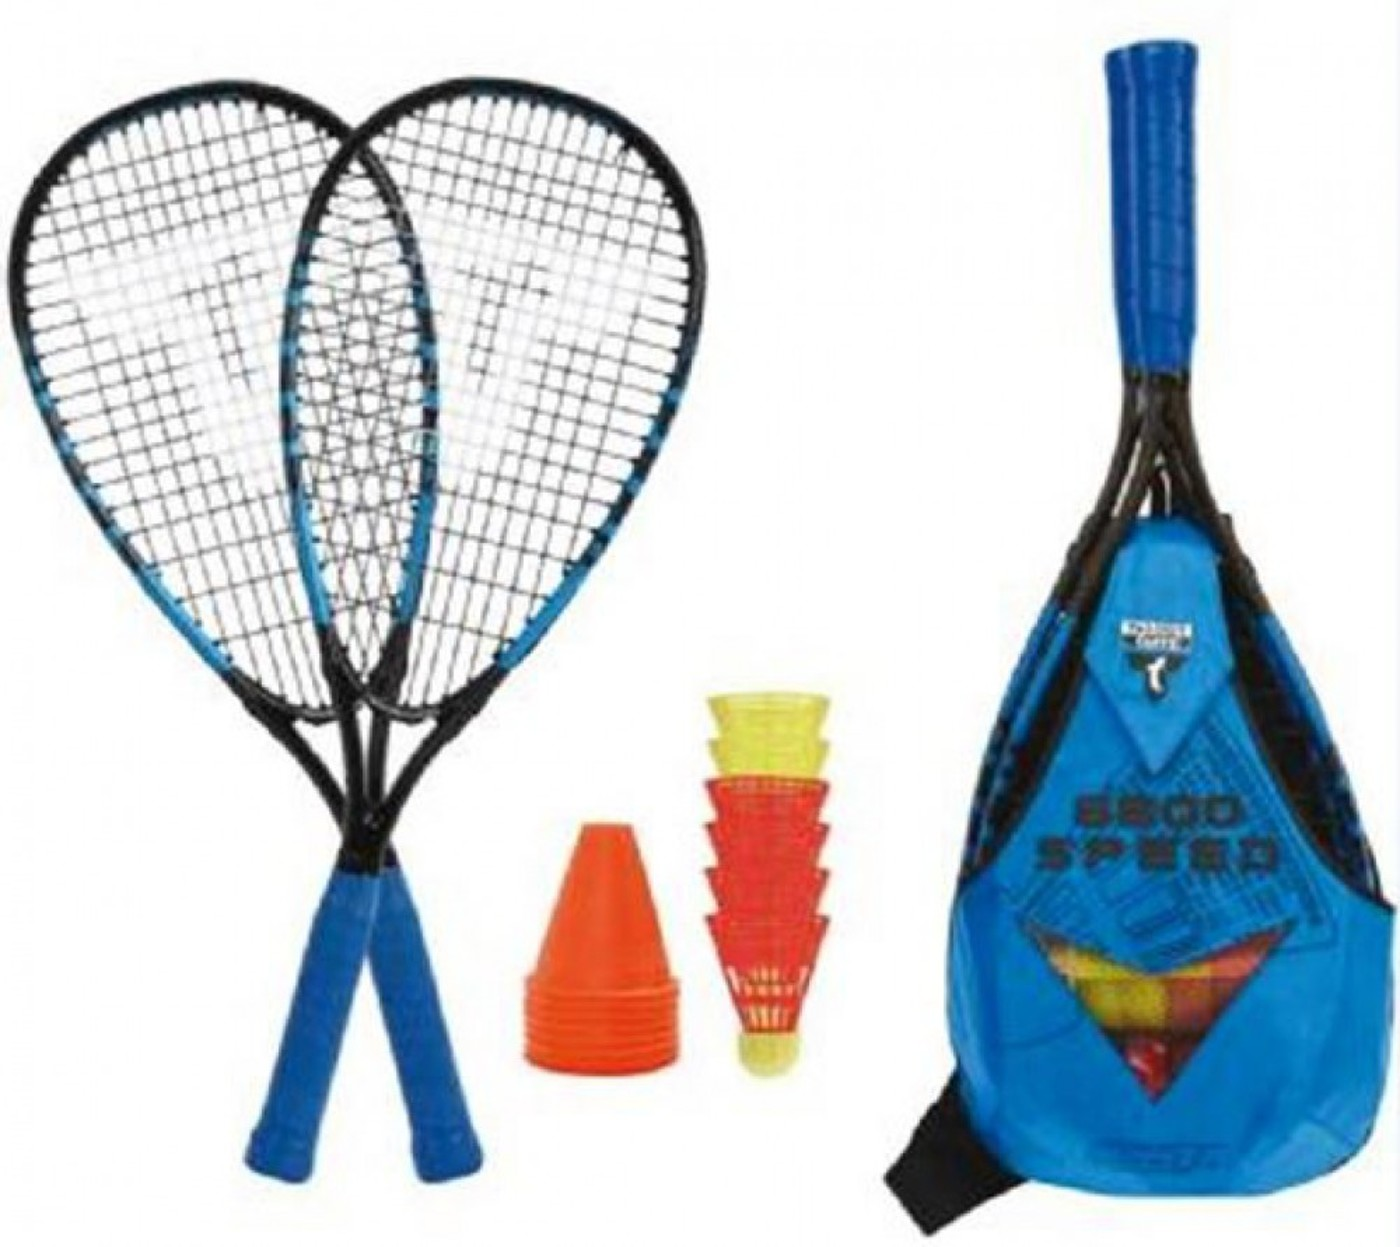 TALBOT TORRO Speedbadminton Set Speed 6600